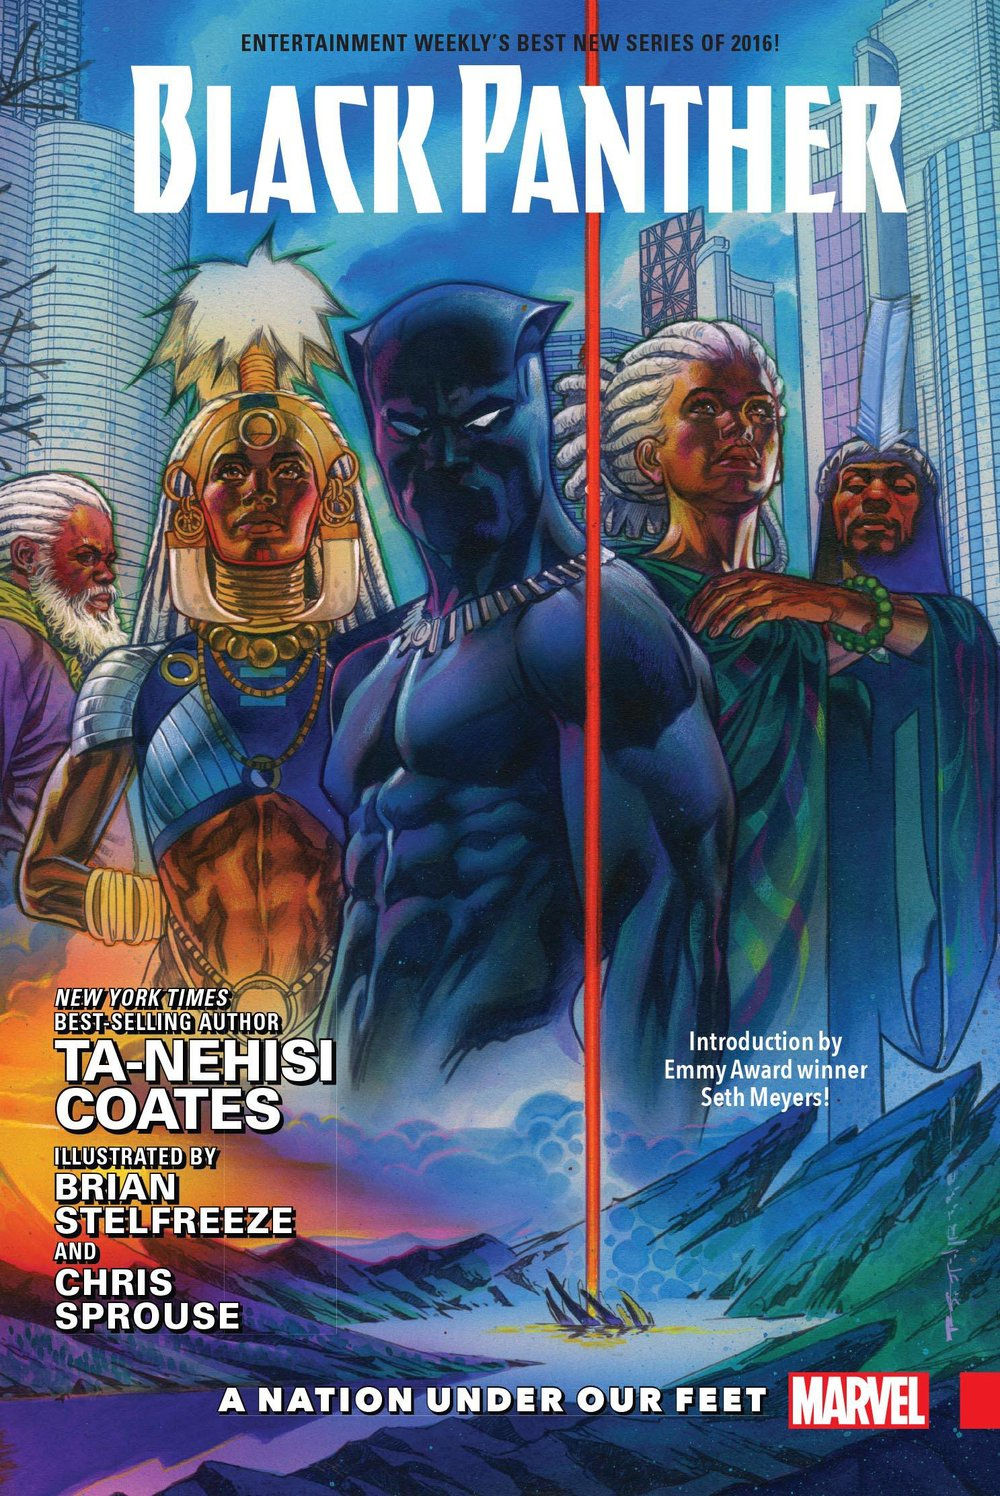 BLACK PANTHER HC 1 A NATION UNDER OUR FEET.jpg